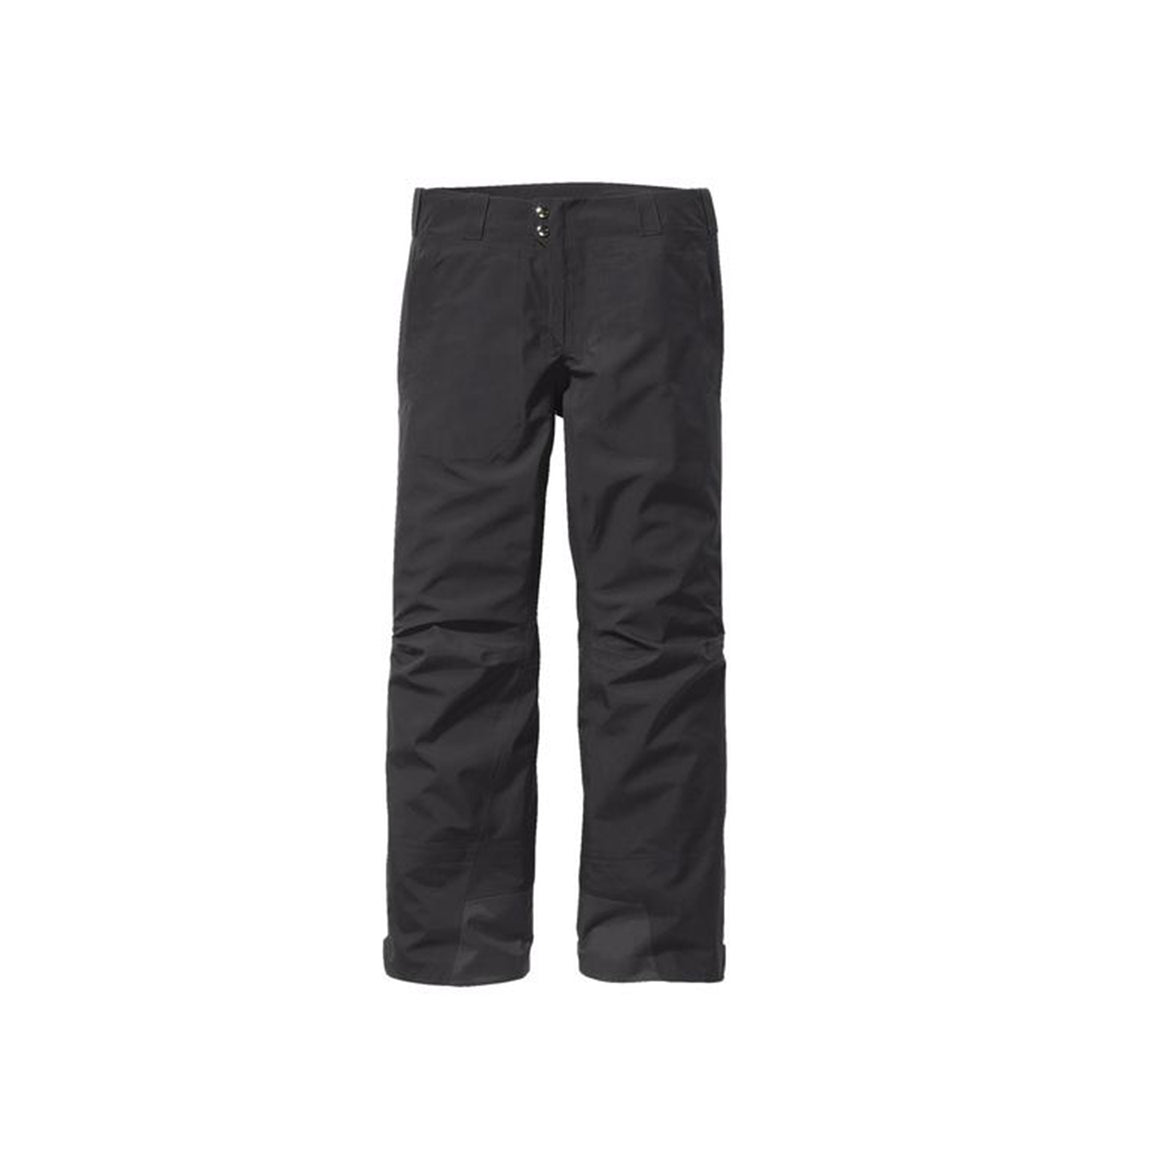 Patagonia Triolet Pants - Men's